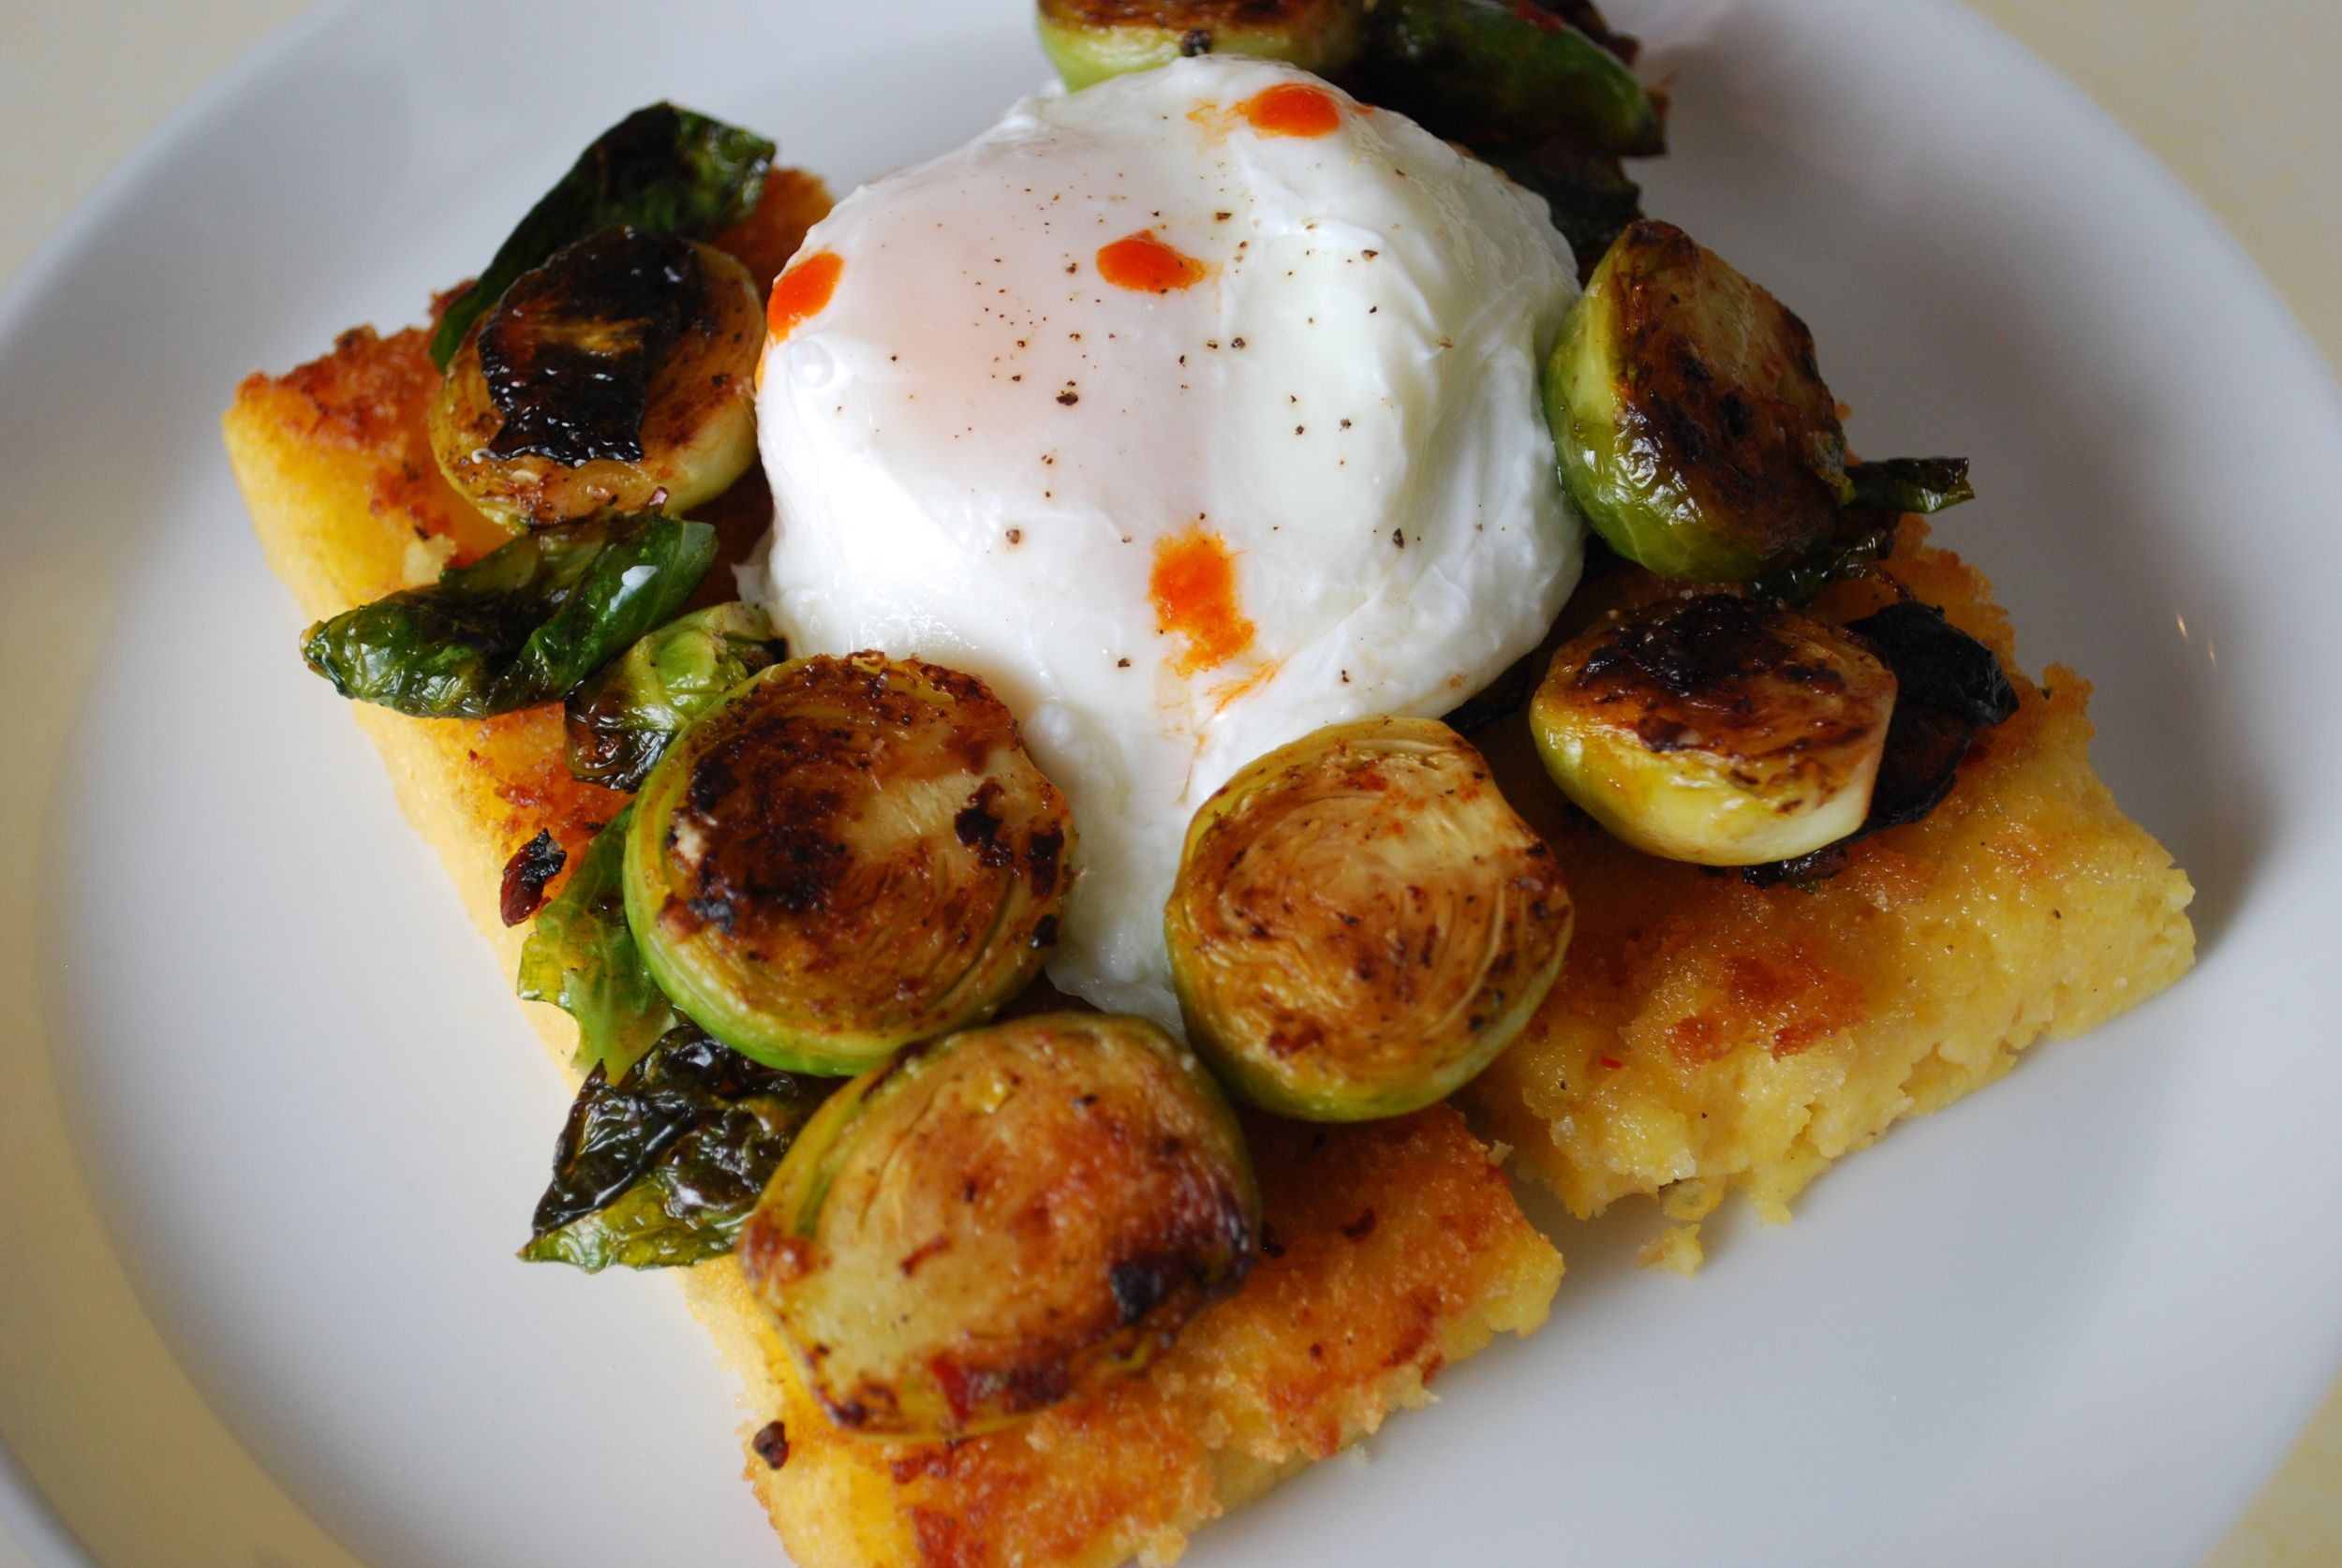 Pan Fried Maple Goat Cheese Polenta with Chipotle Brussels Sprouts